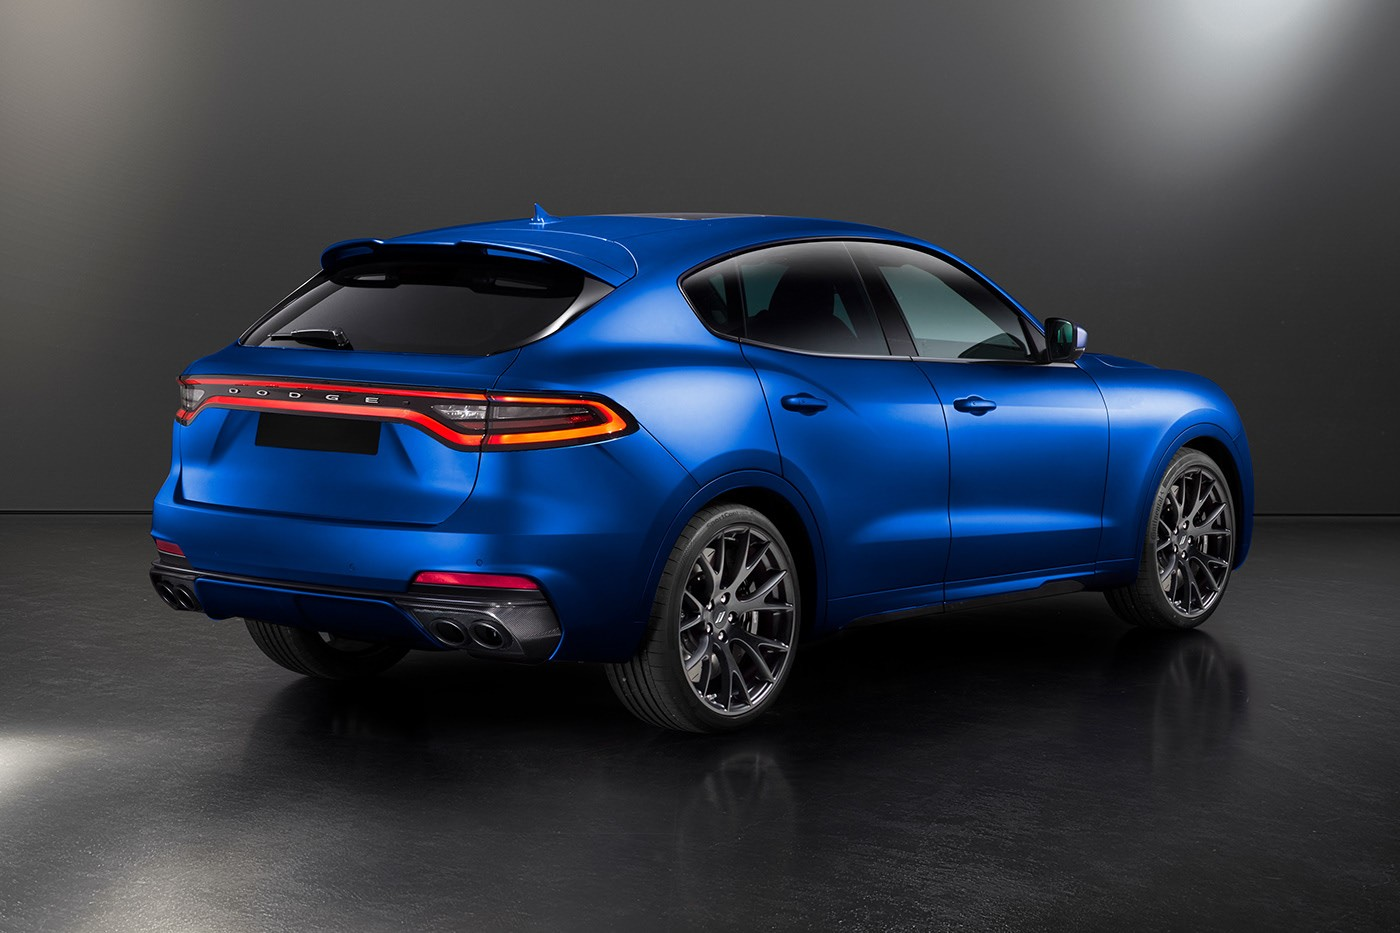 Alfa Stelvio With Dodge Face Swap Is Funny, Hints at 5 Journey